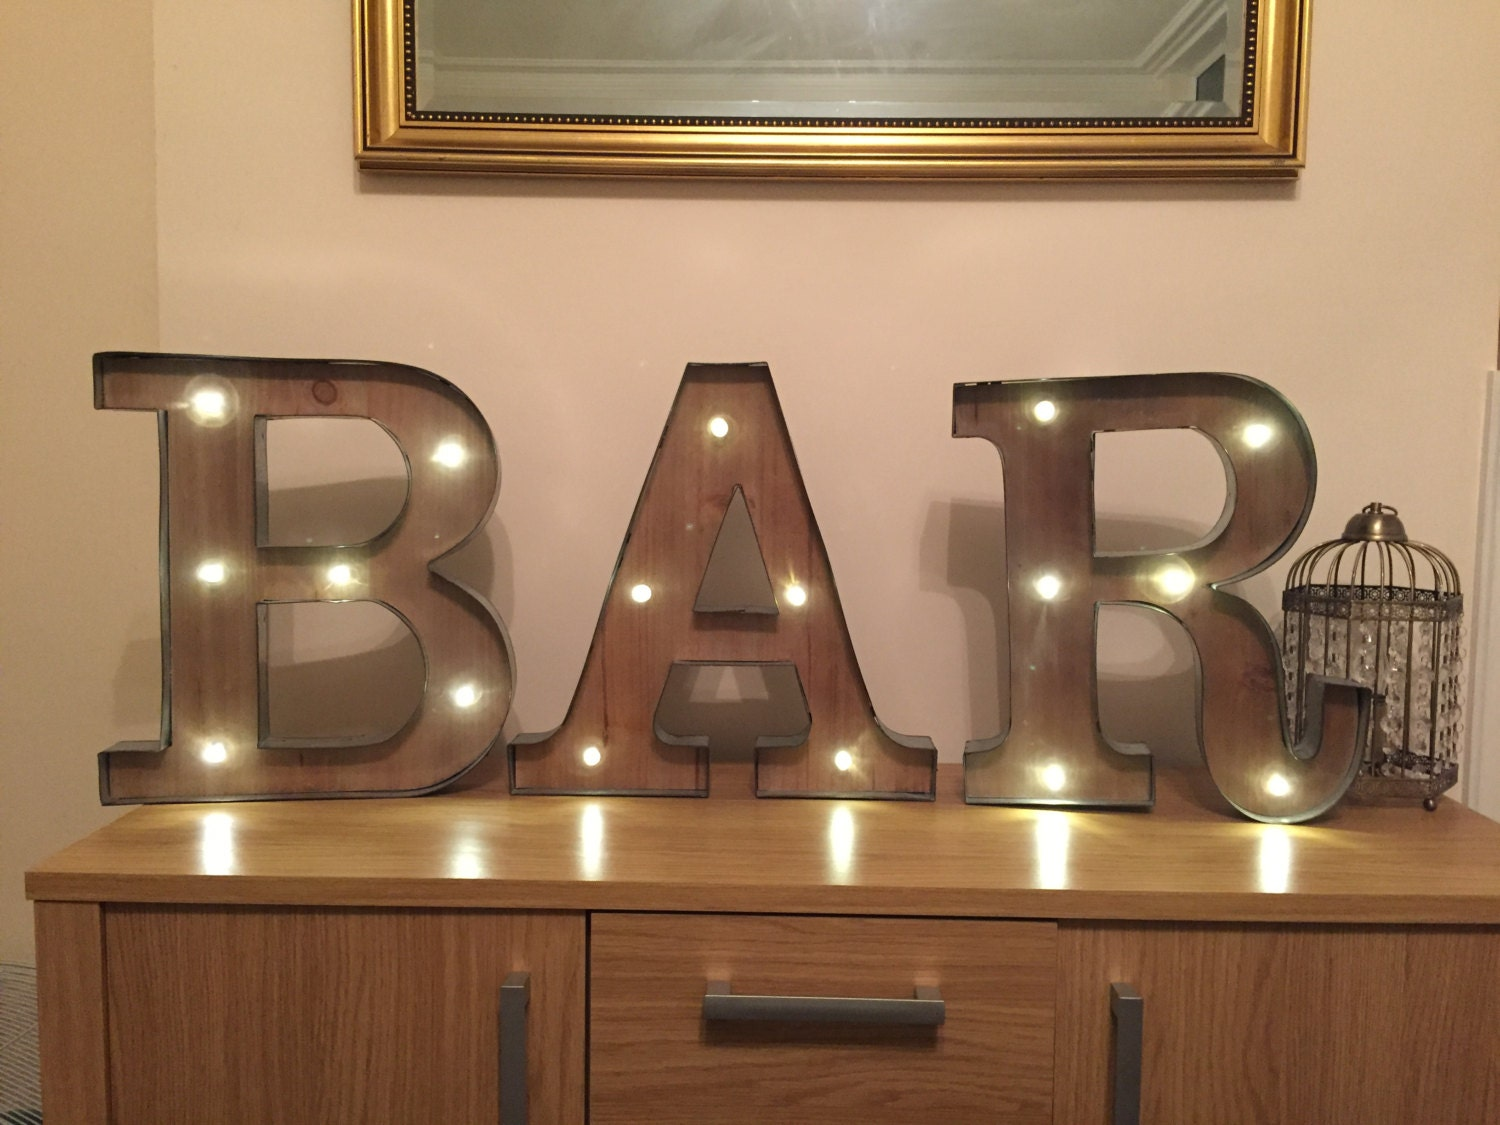 Freestanding bar wooden rustic led light up letters